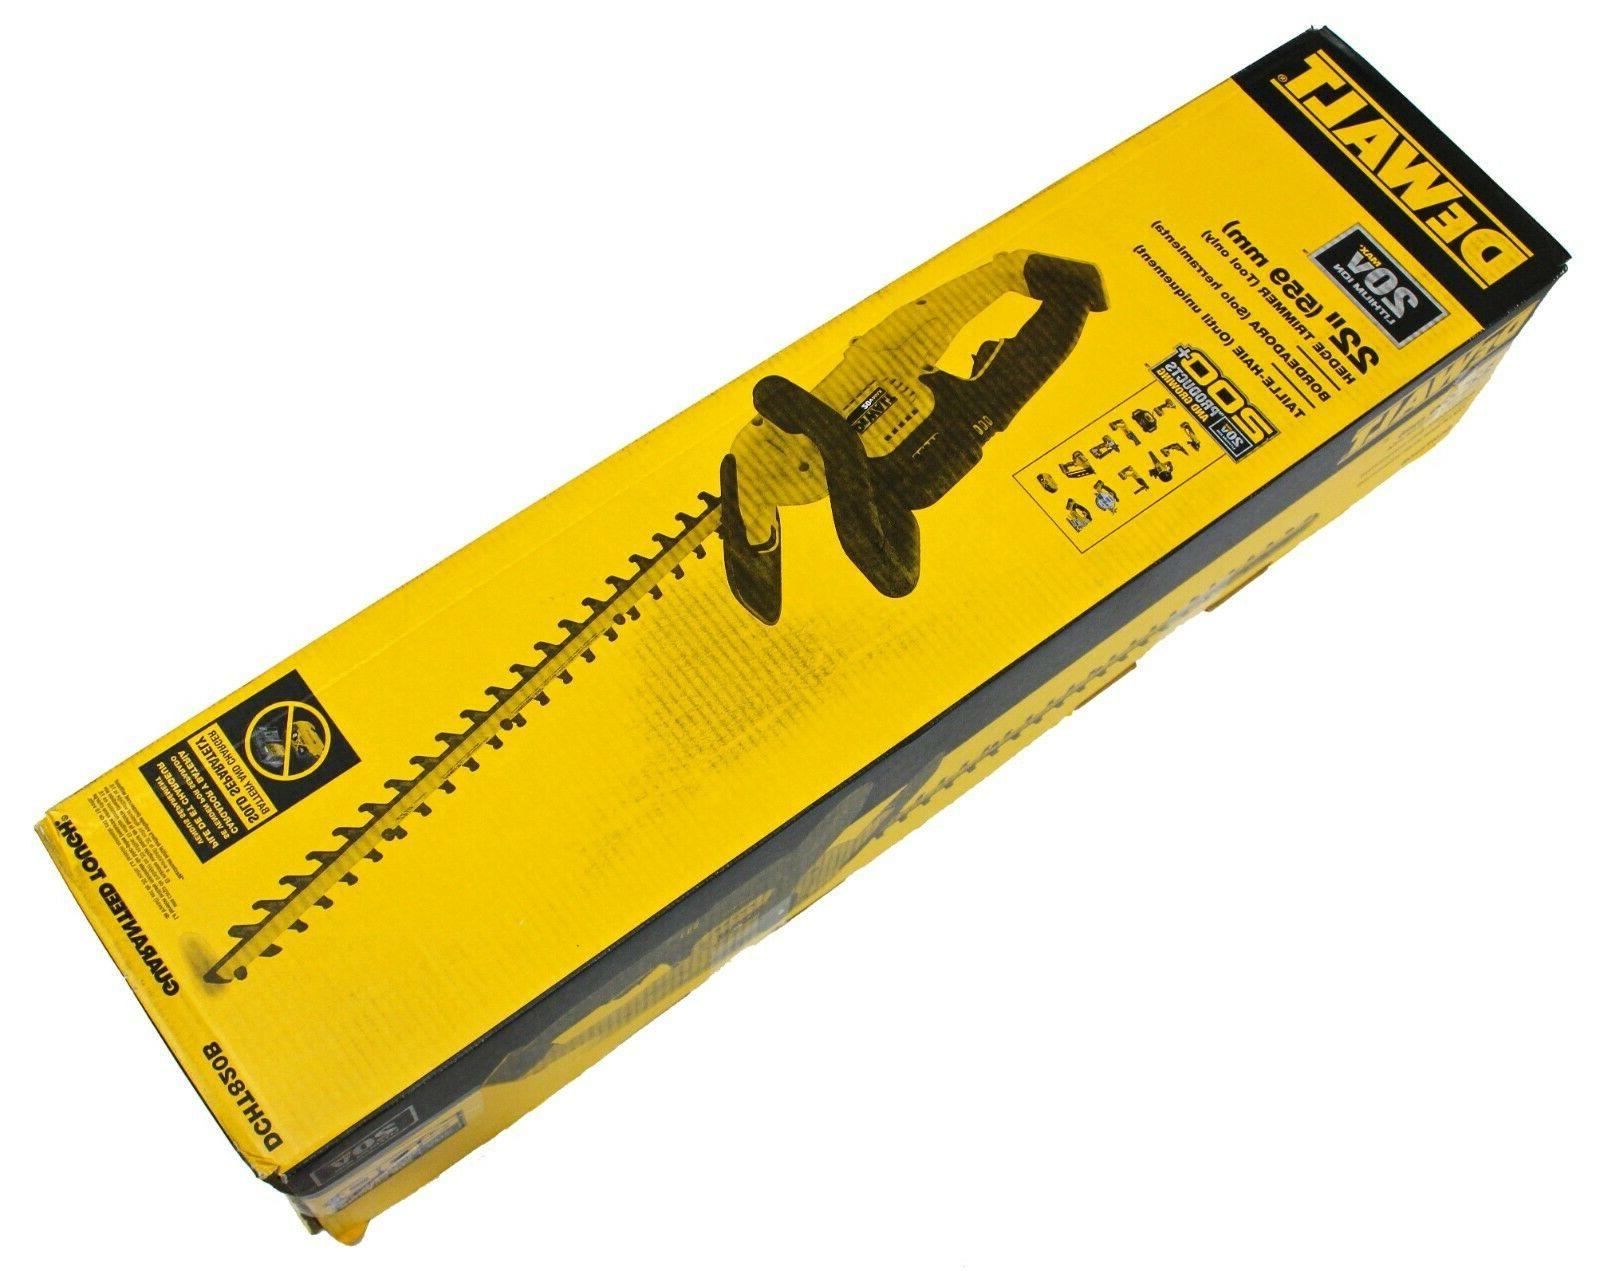 dcht820b 22 hedge trimmer tool only